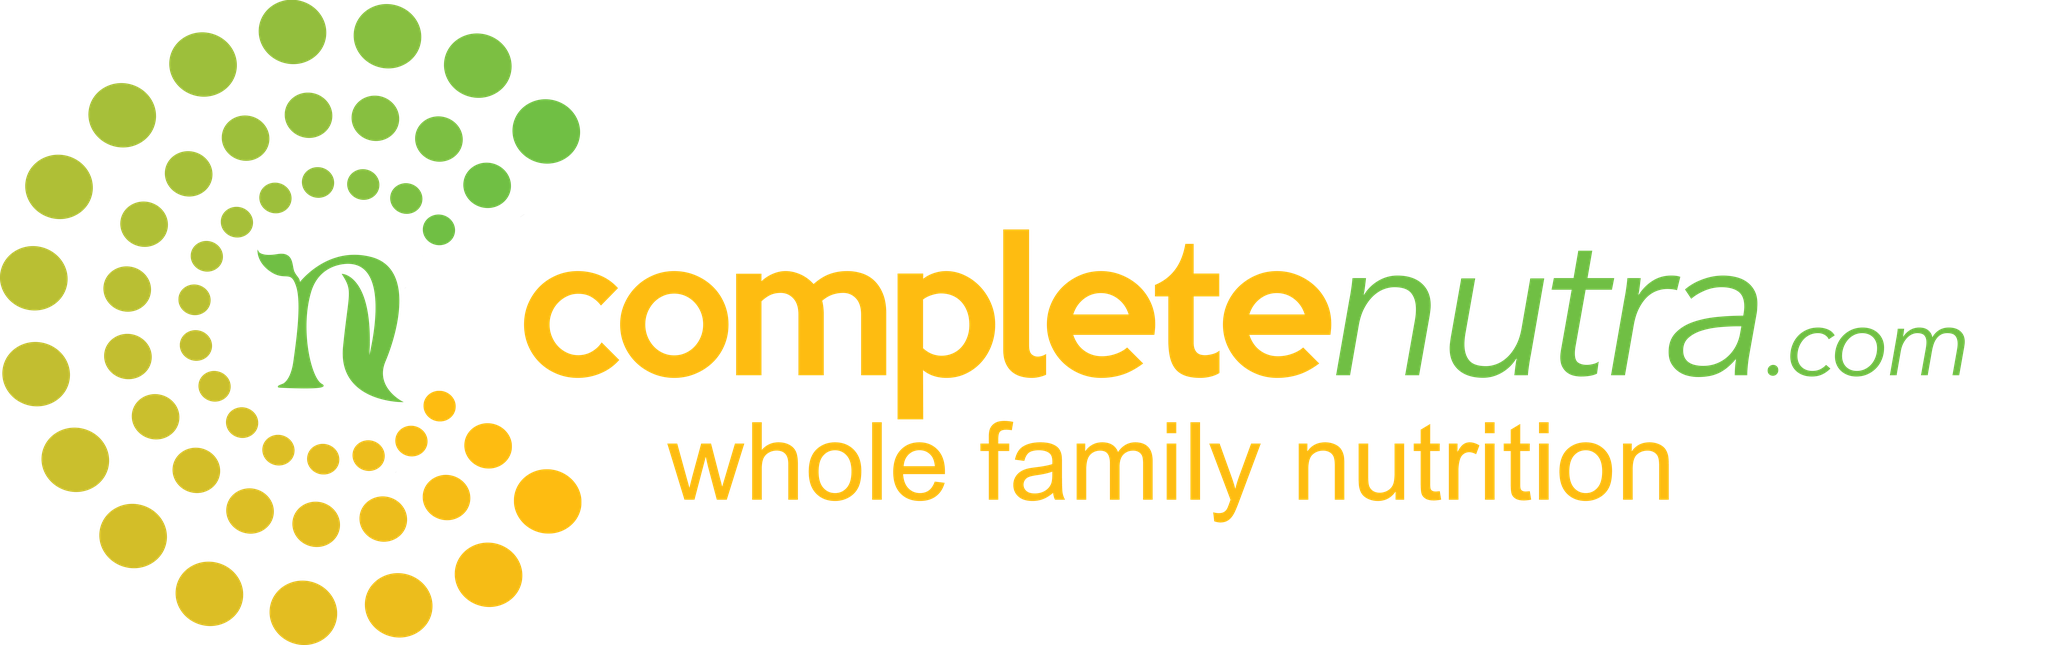 Complete Nutra Whole Family Nutrition